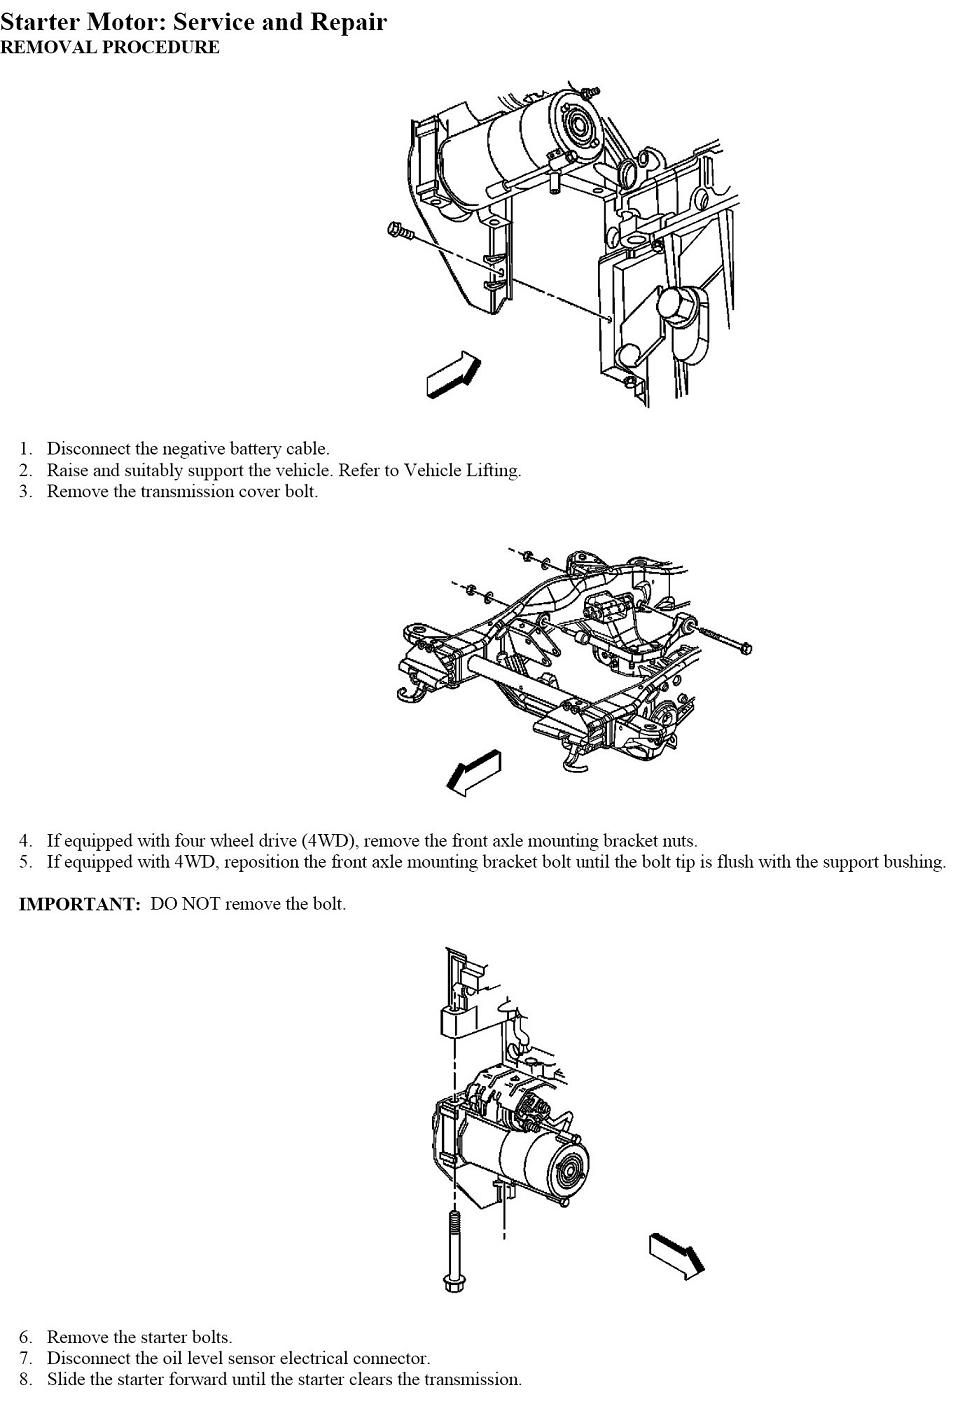 Ford Crown Victoria Police Engine Sh3me 2008 Transmission Wiring Diagram Acura Tl Html